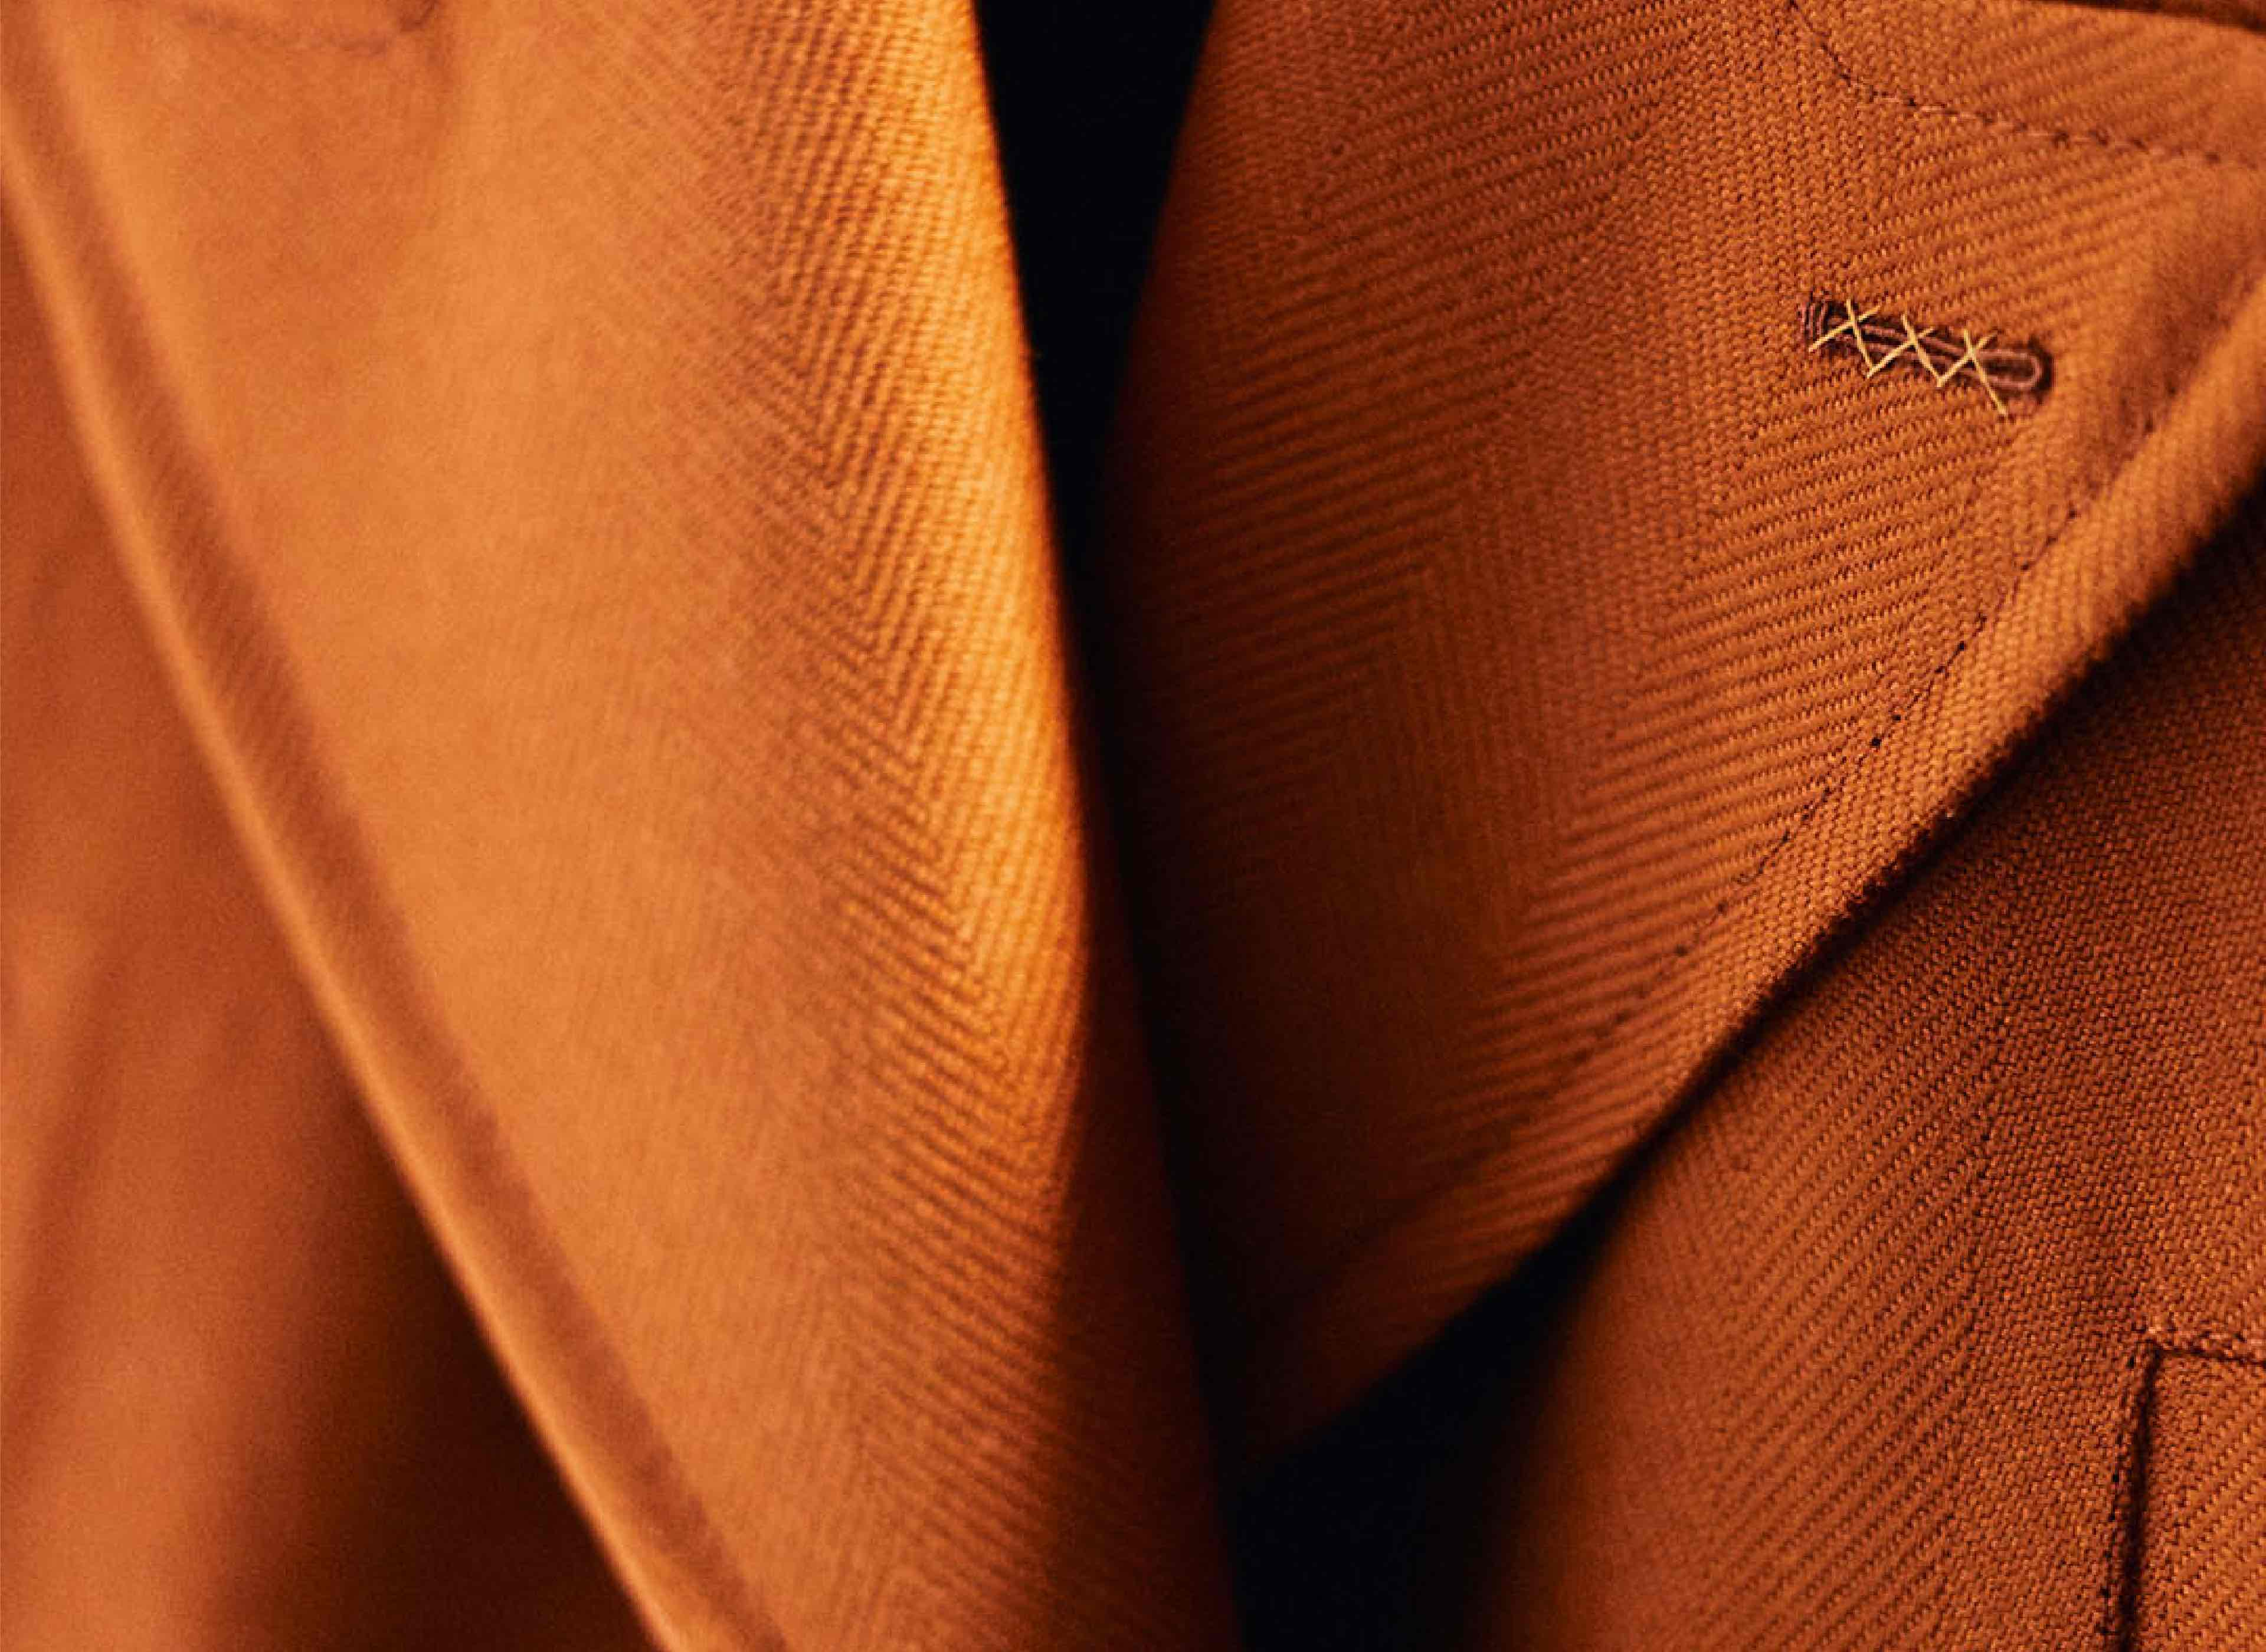 Reserve online and try your style on in store | Zegna